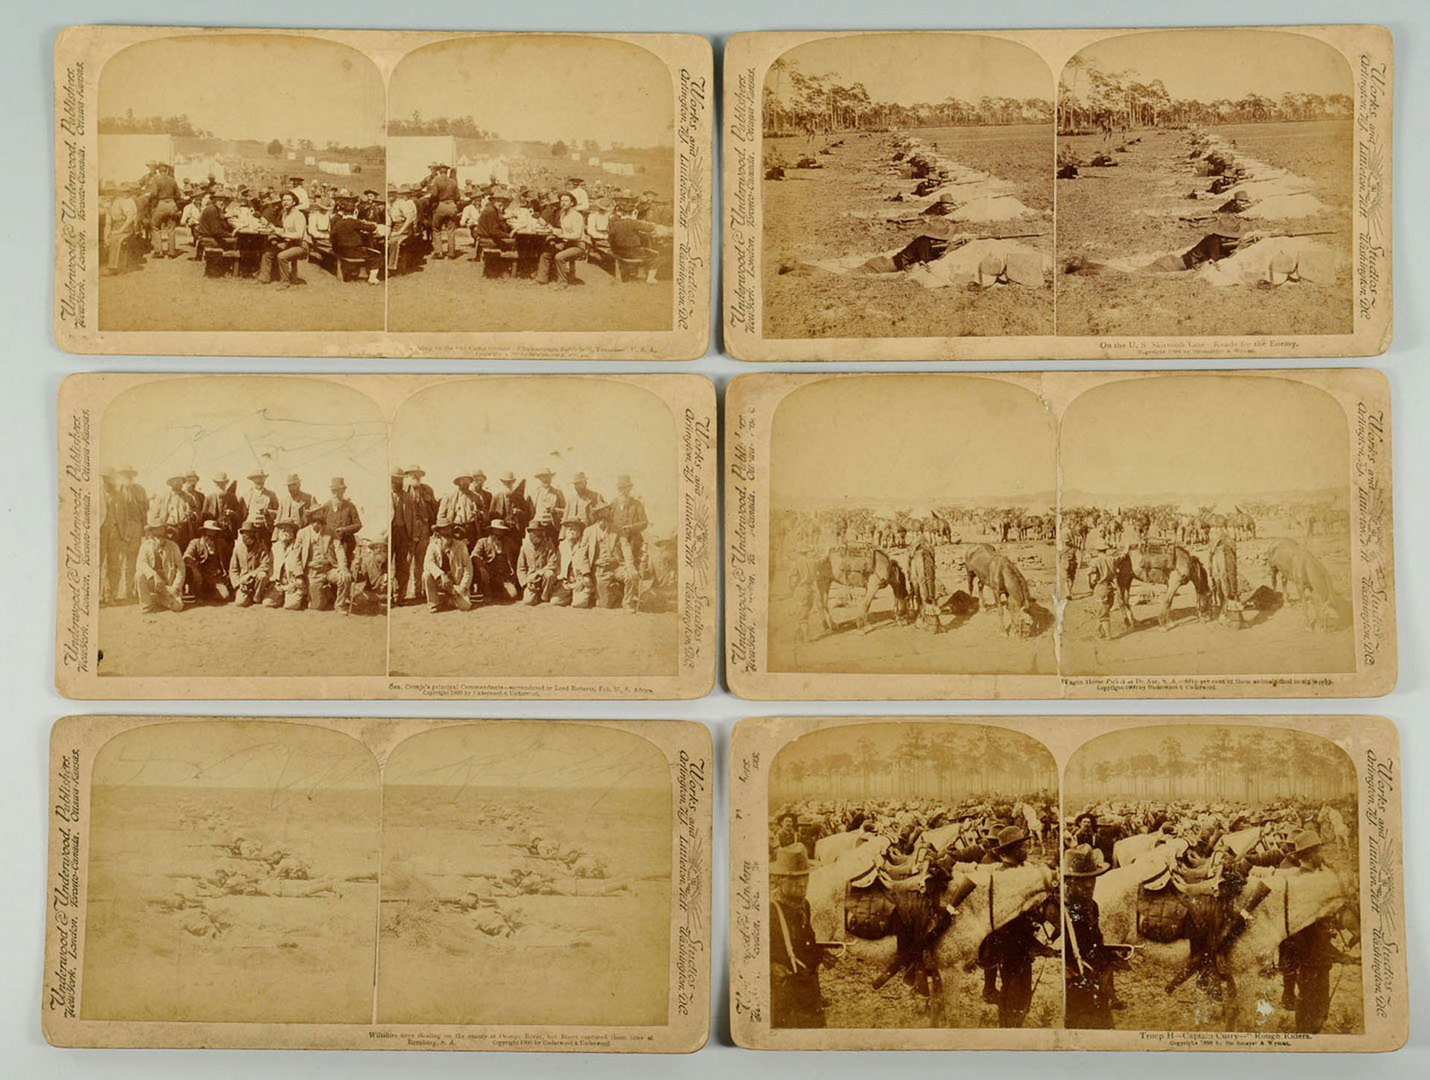 Lot 691: 2 Vintage Postcard Albums & Stereo View Cards